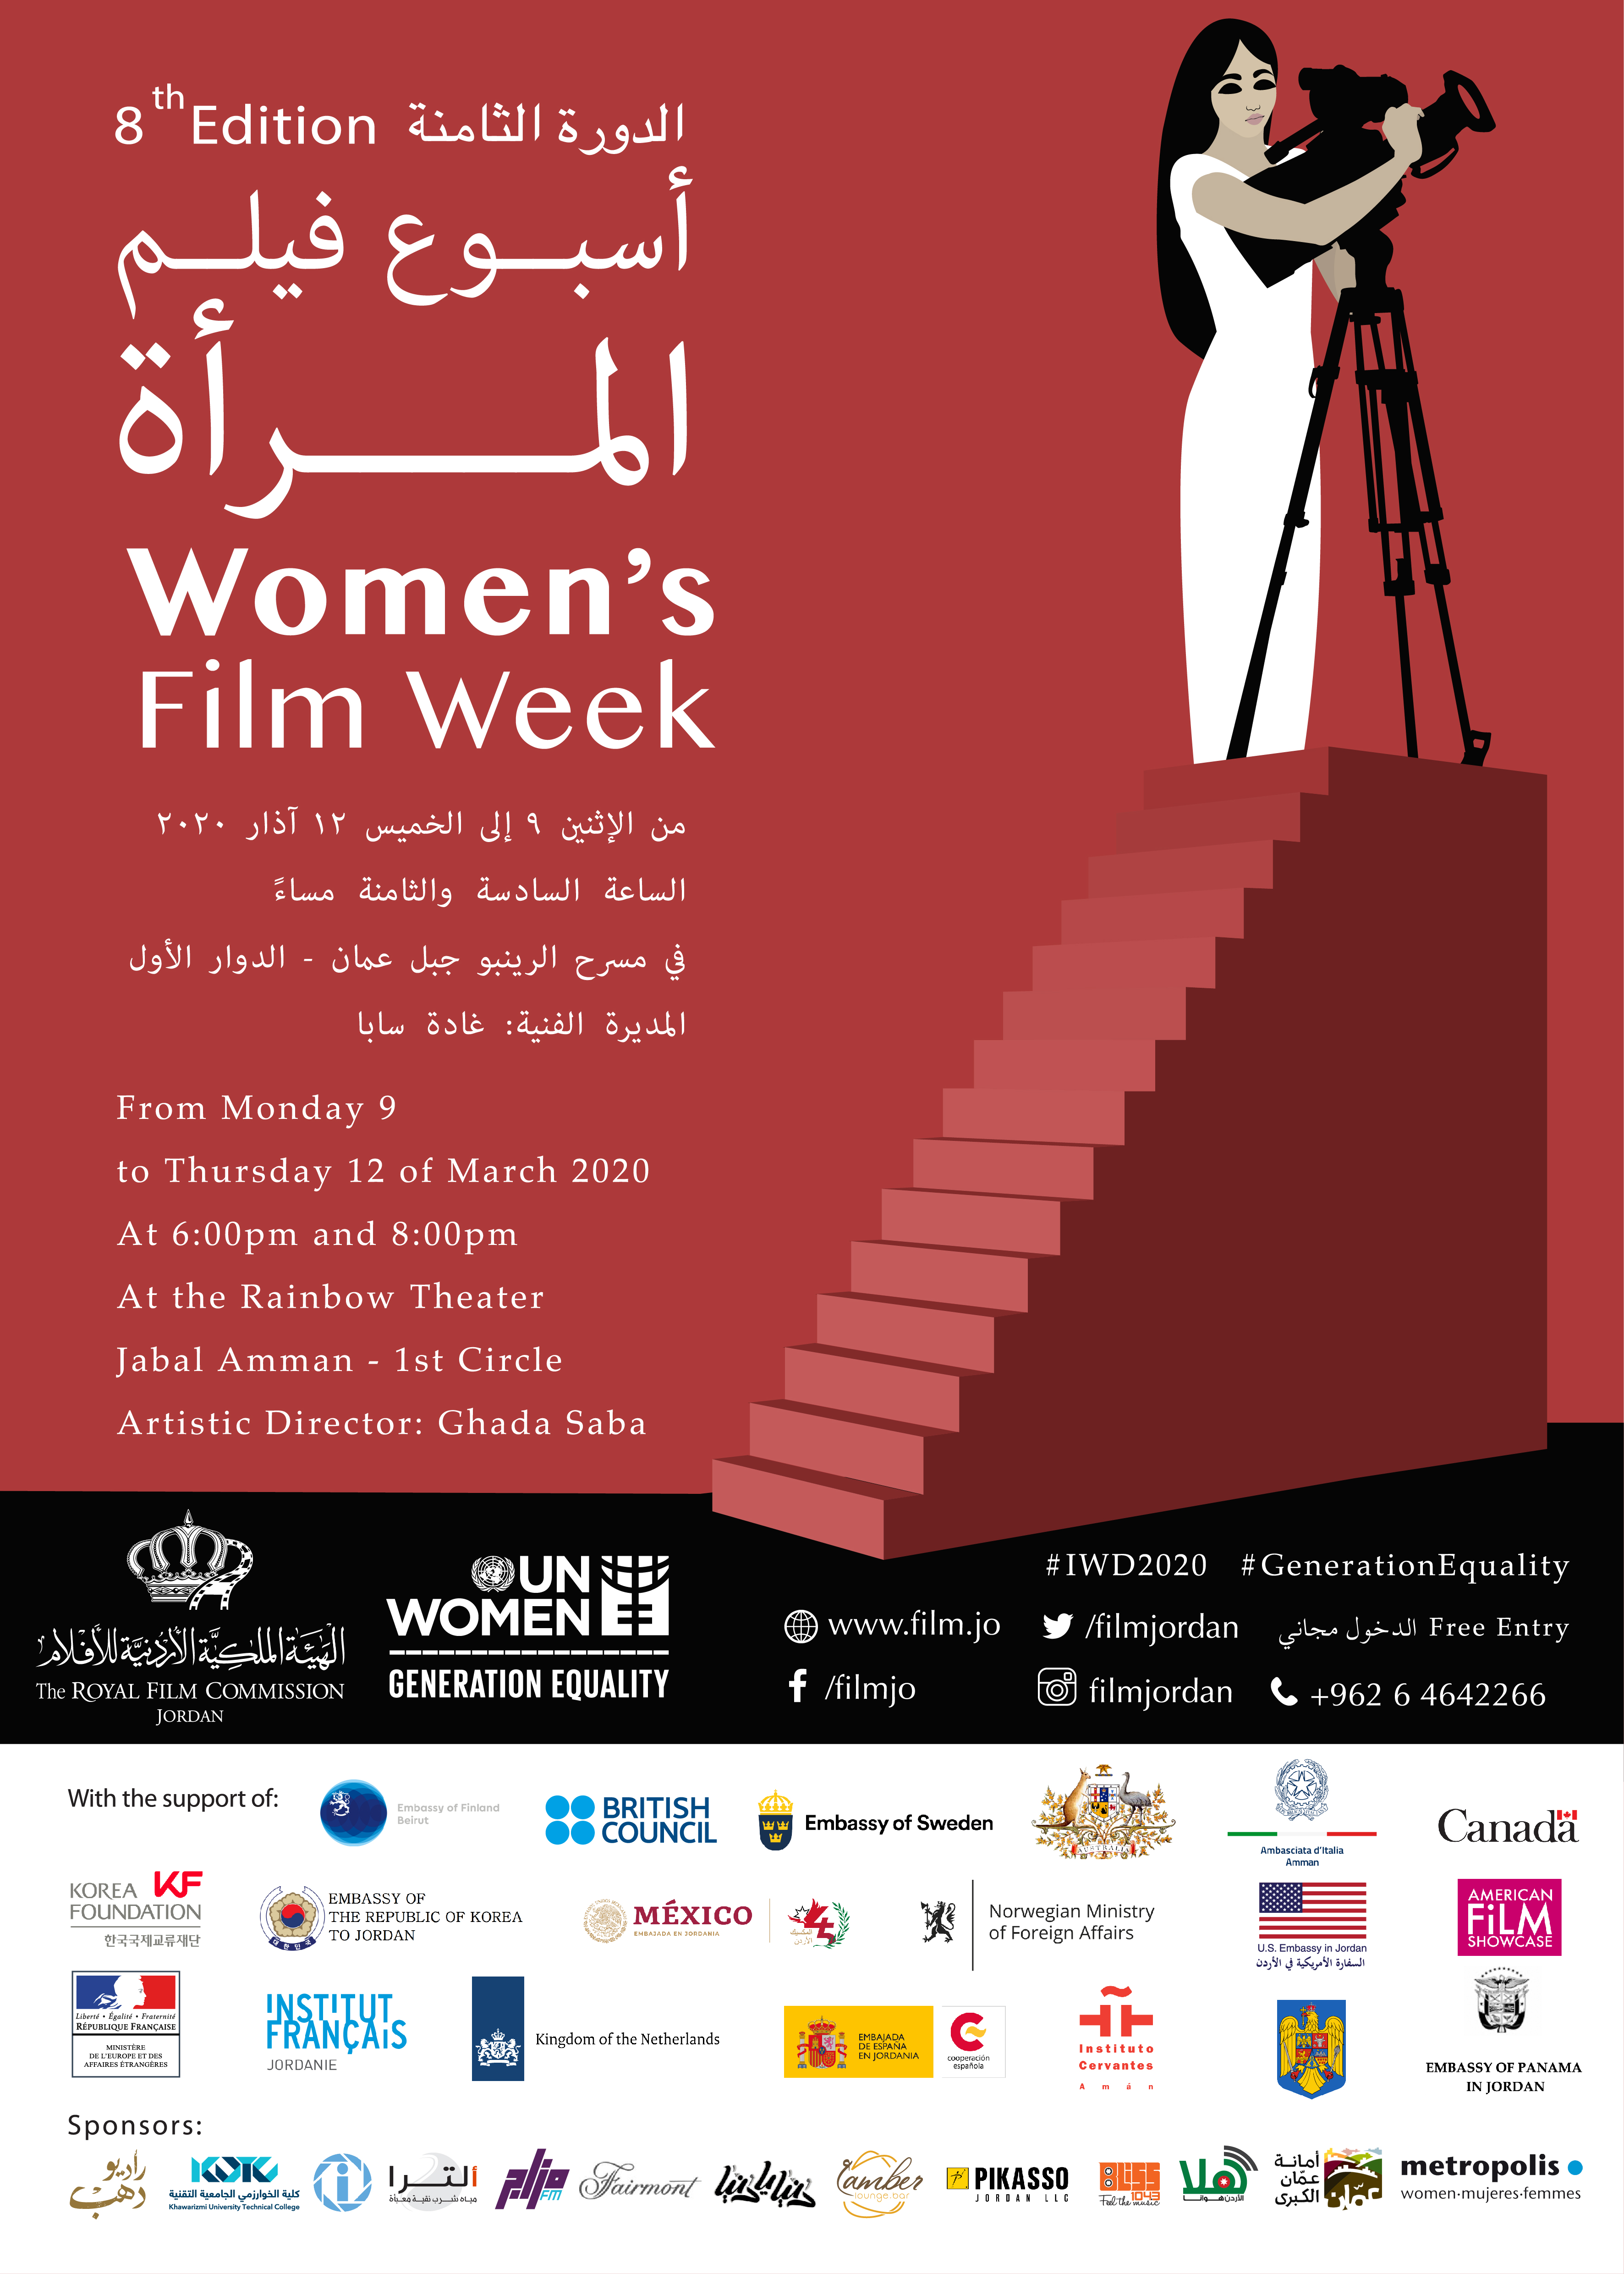 UN WOMEN AND THE ROYAL FILM COMMISSION LAUNCH THE 8th EDITION OF THE WOMEN'S FILM WEEK